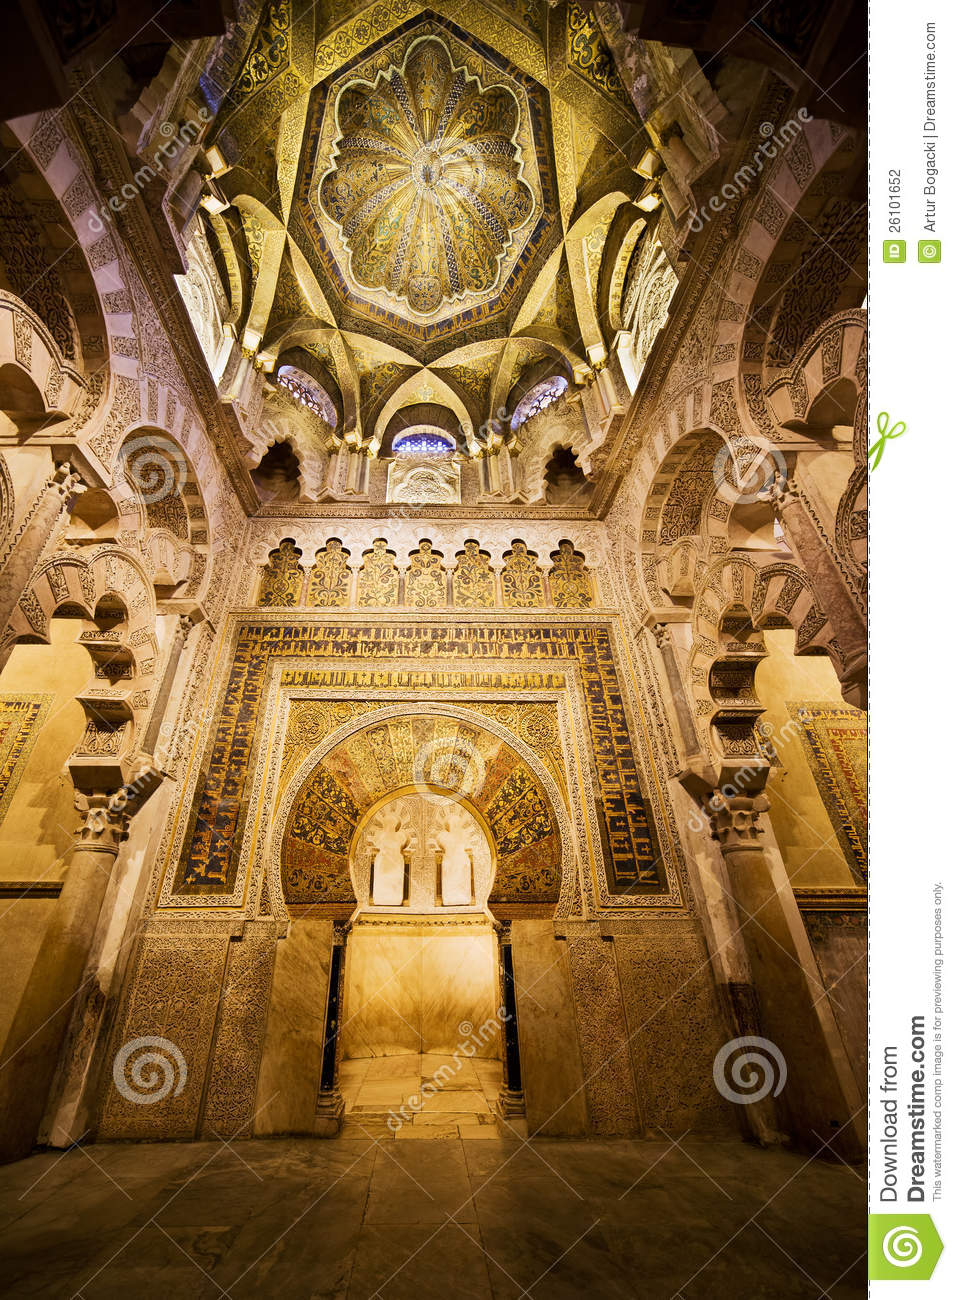 mihrab and ceiling of mezquita in cordoba stock photography image 26101652. Black Bedroom Furniture Sets. Home Design Ideas